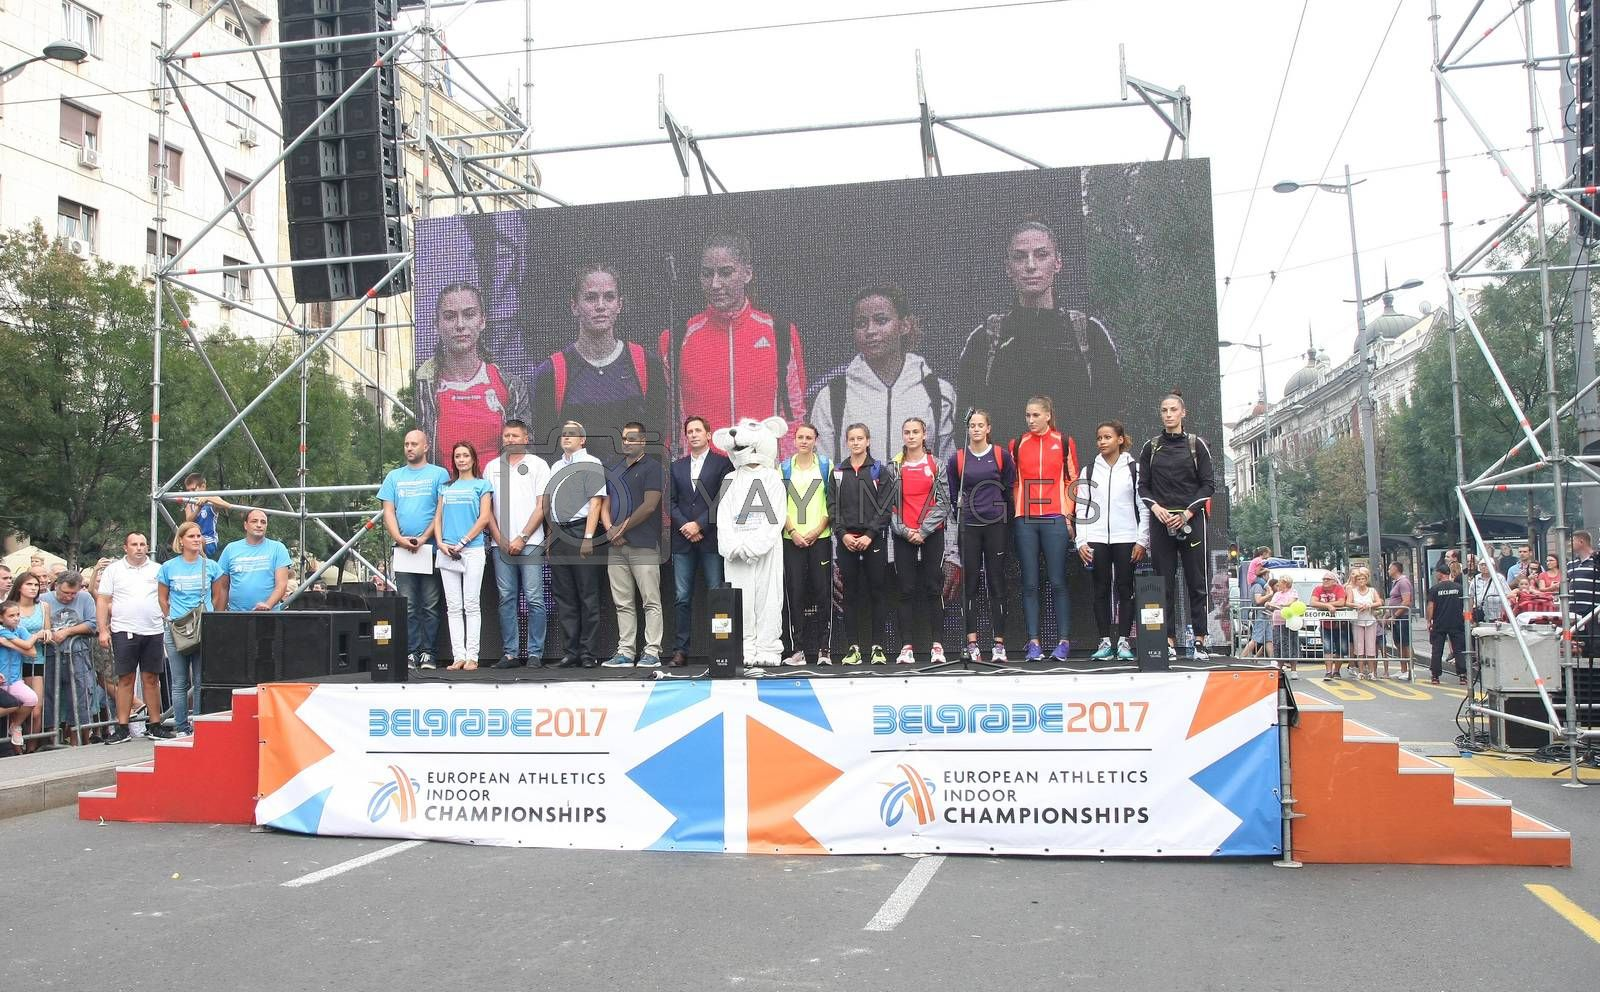 BELGRADE,SERBIA - SEPTEMBER 11 , 2016:Long jump athletes Ivana Spanovic,Jazmin Sawyers,Erica Jarder,Paola Borovic,Antonia Radic,Marija Milutinovic and Sara Lukic on the stage before long jump competition as promotion of European athletics indoors championship which will be held from 3-5.March ,2017 in Belgrade,Serbia